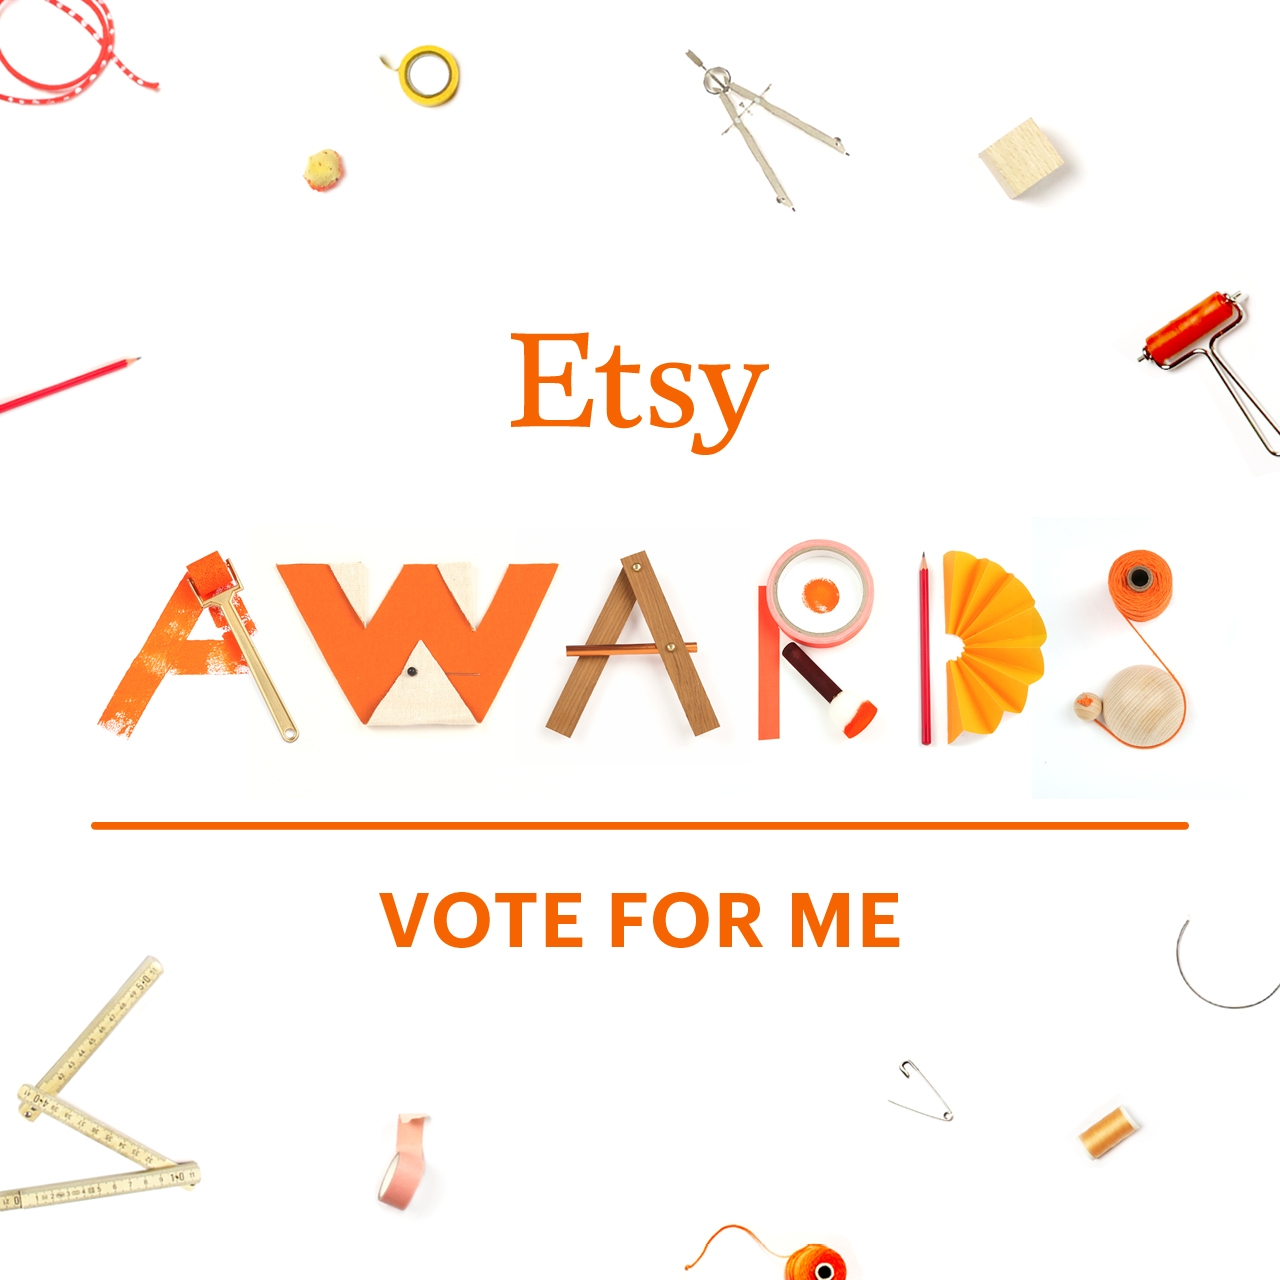 Etsy Awards 2016 - vote for dovile b.